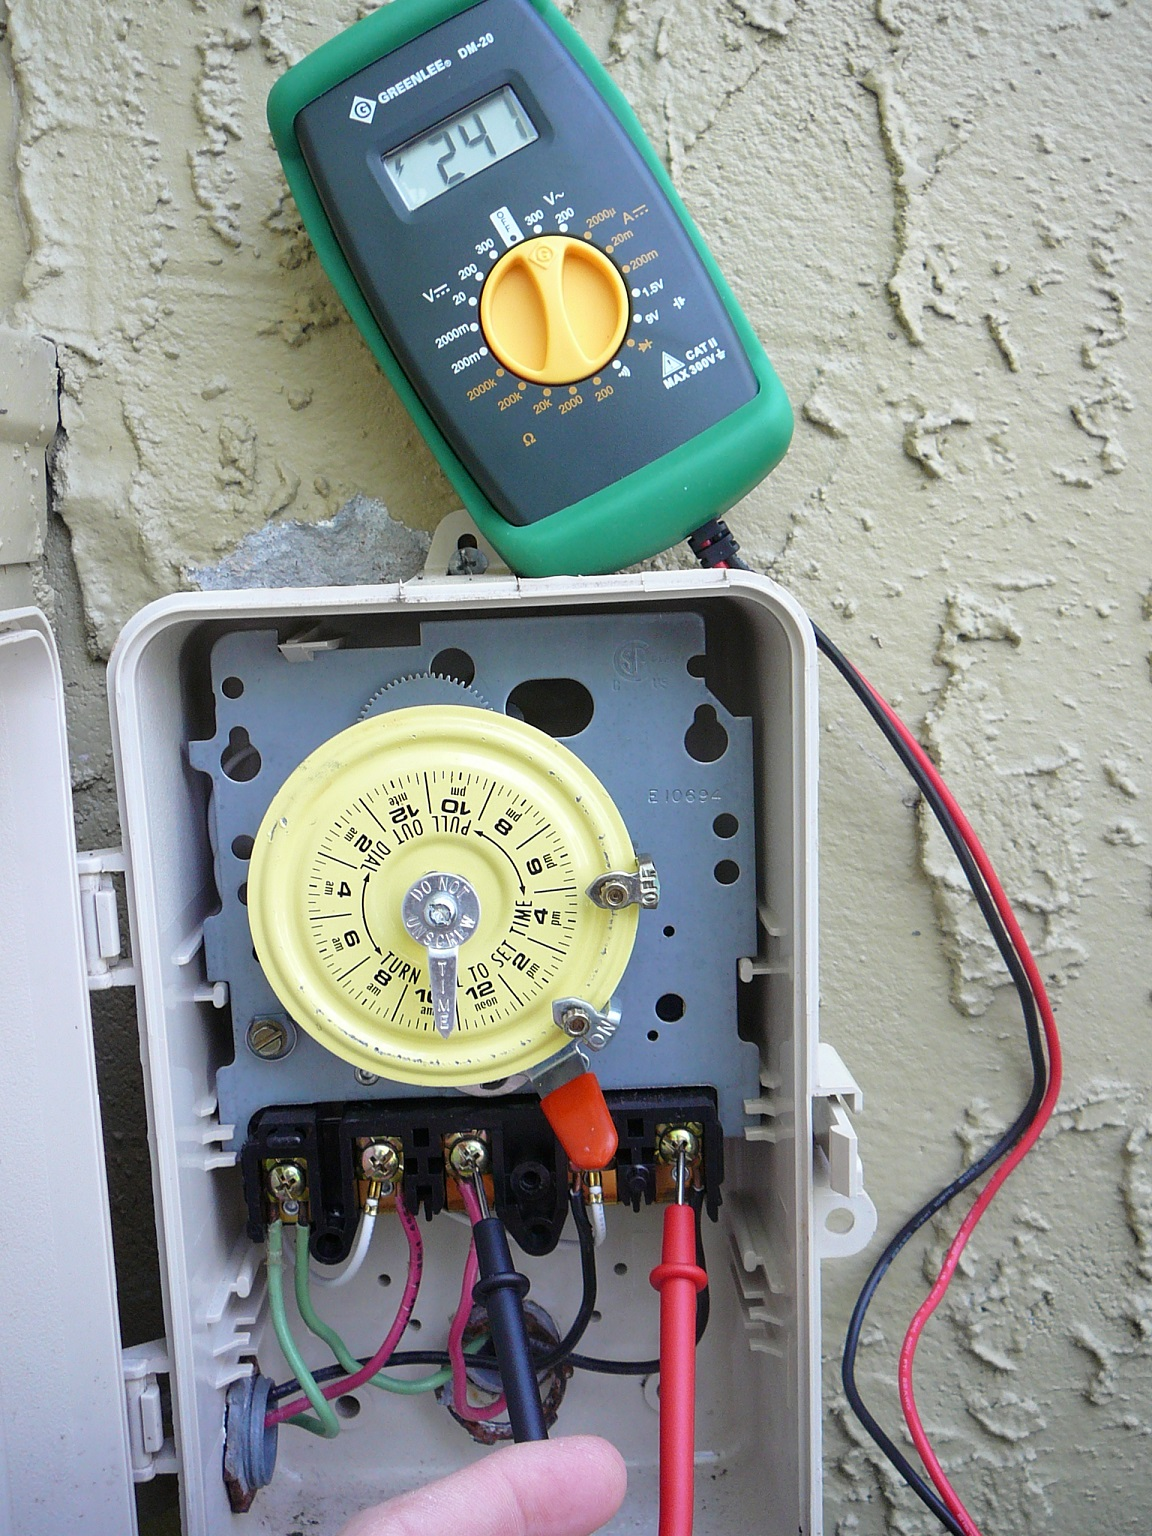 How To Use A Multimeter Test Pool Pump Motor Voltage. If You Are Installing A New Pool Pump Or Have To Troubleshoot Failing Will Generally Want Measure The Motors Supply Voltage. Wiring. Pool 9 Wire Motor Wiring At Scoala.co